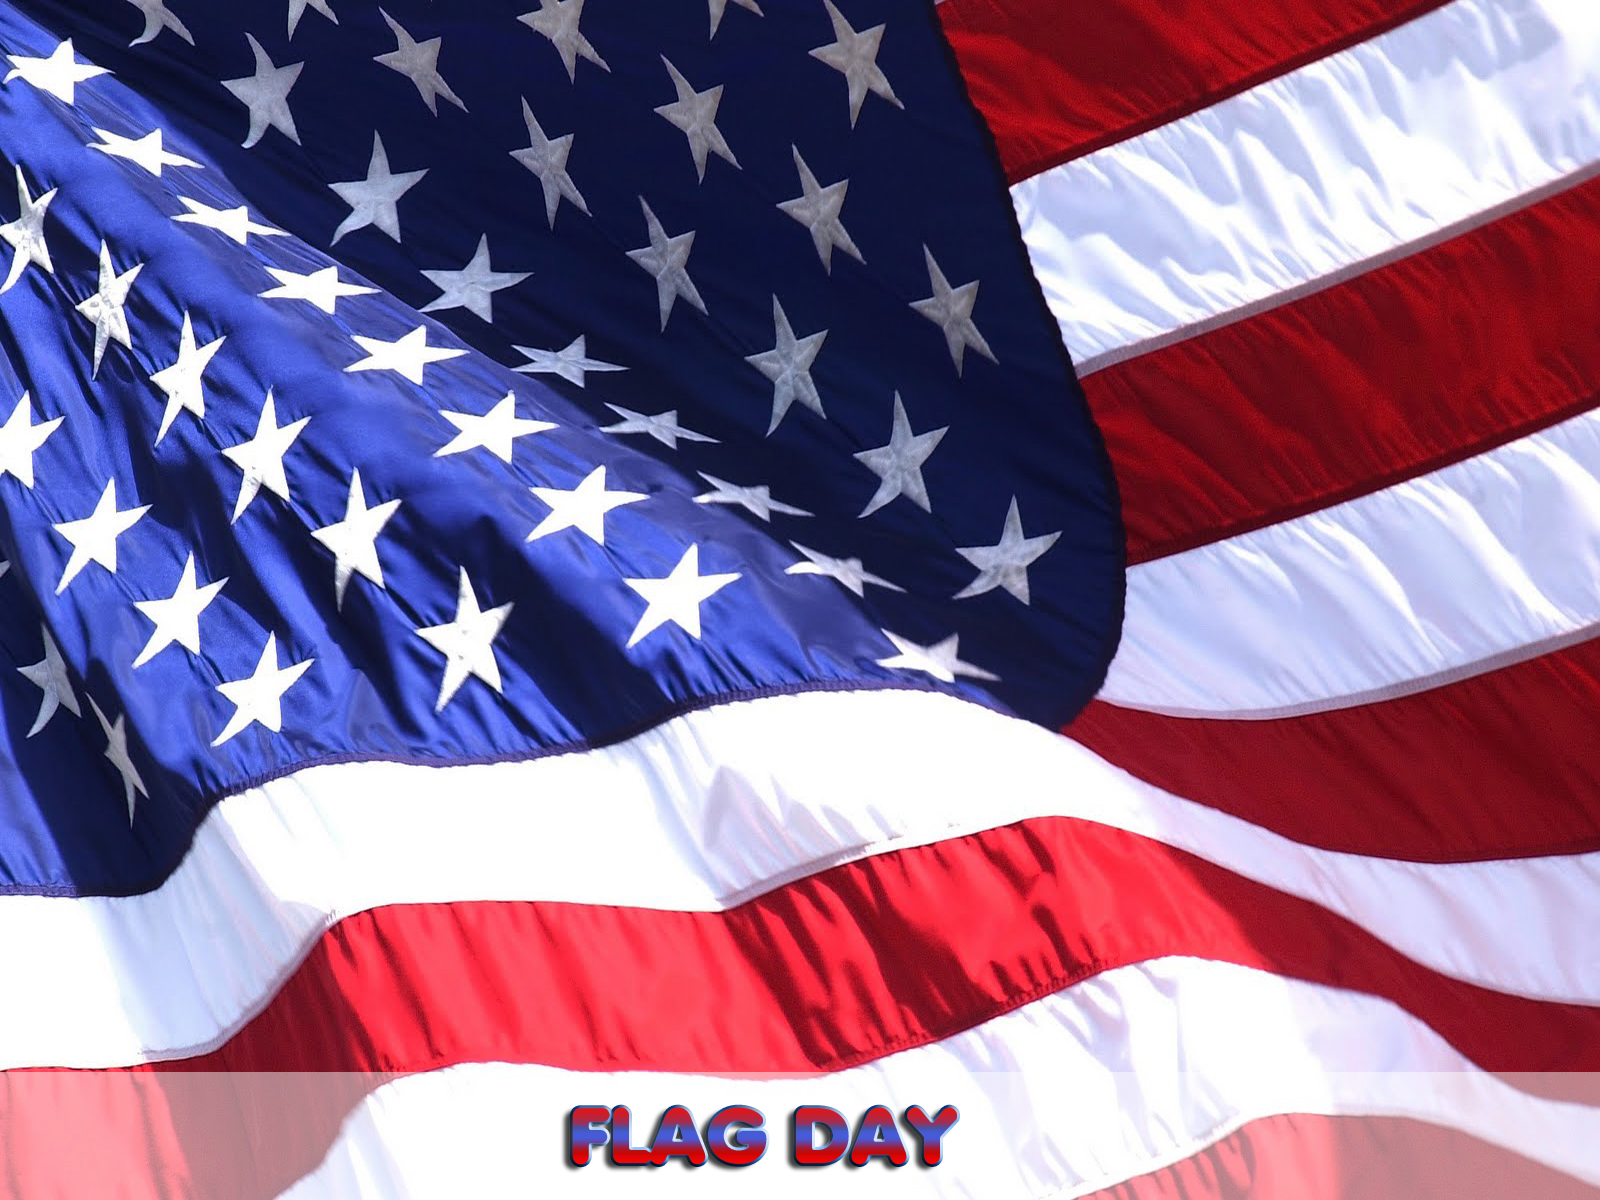 United States Flag Day computer desktop wallpapers pictures images 1600x1200